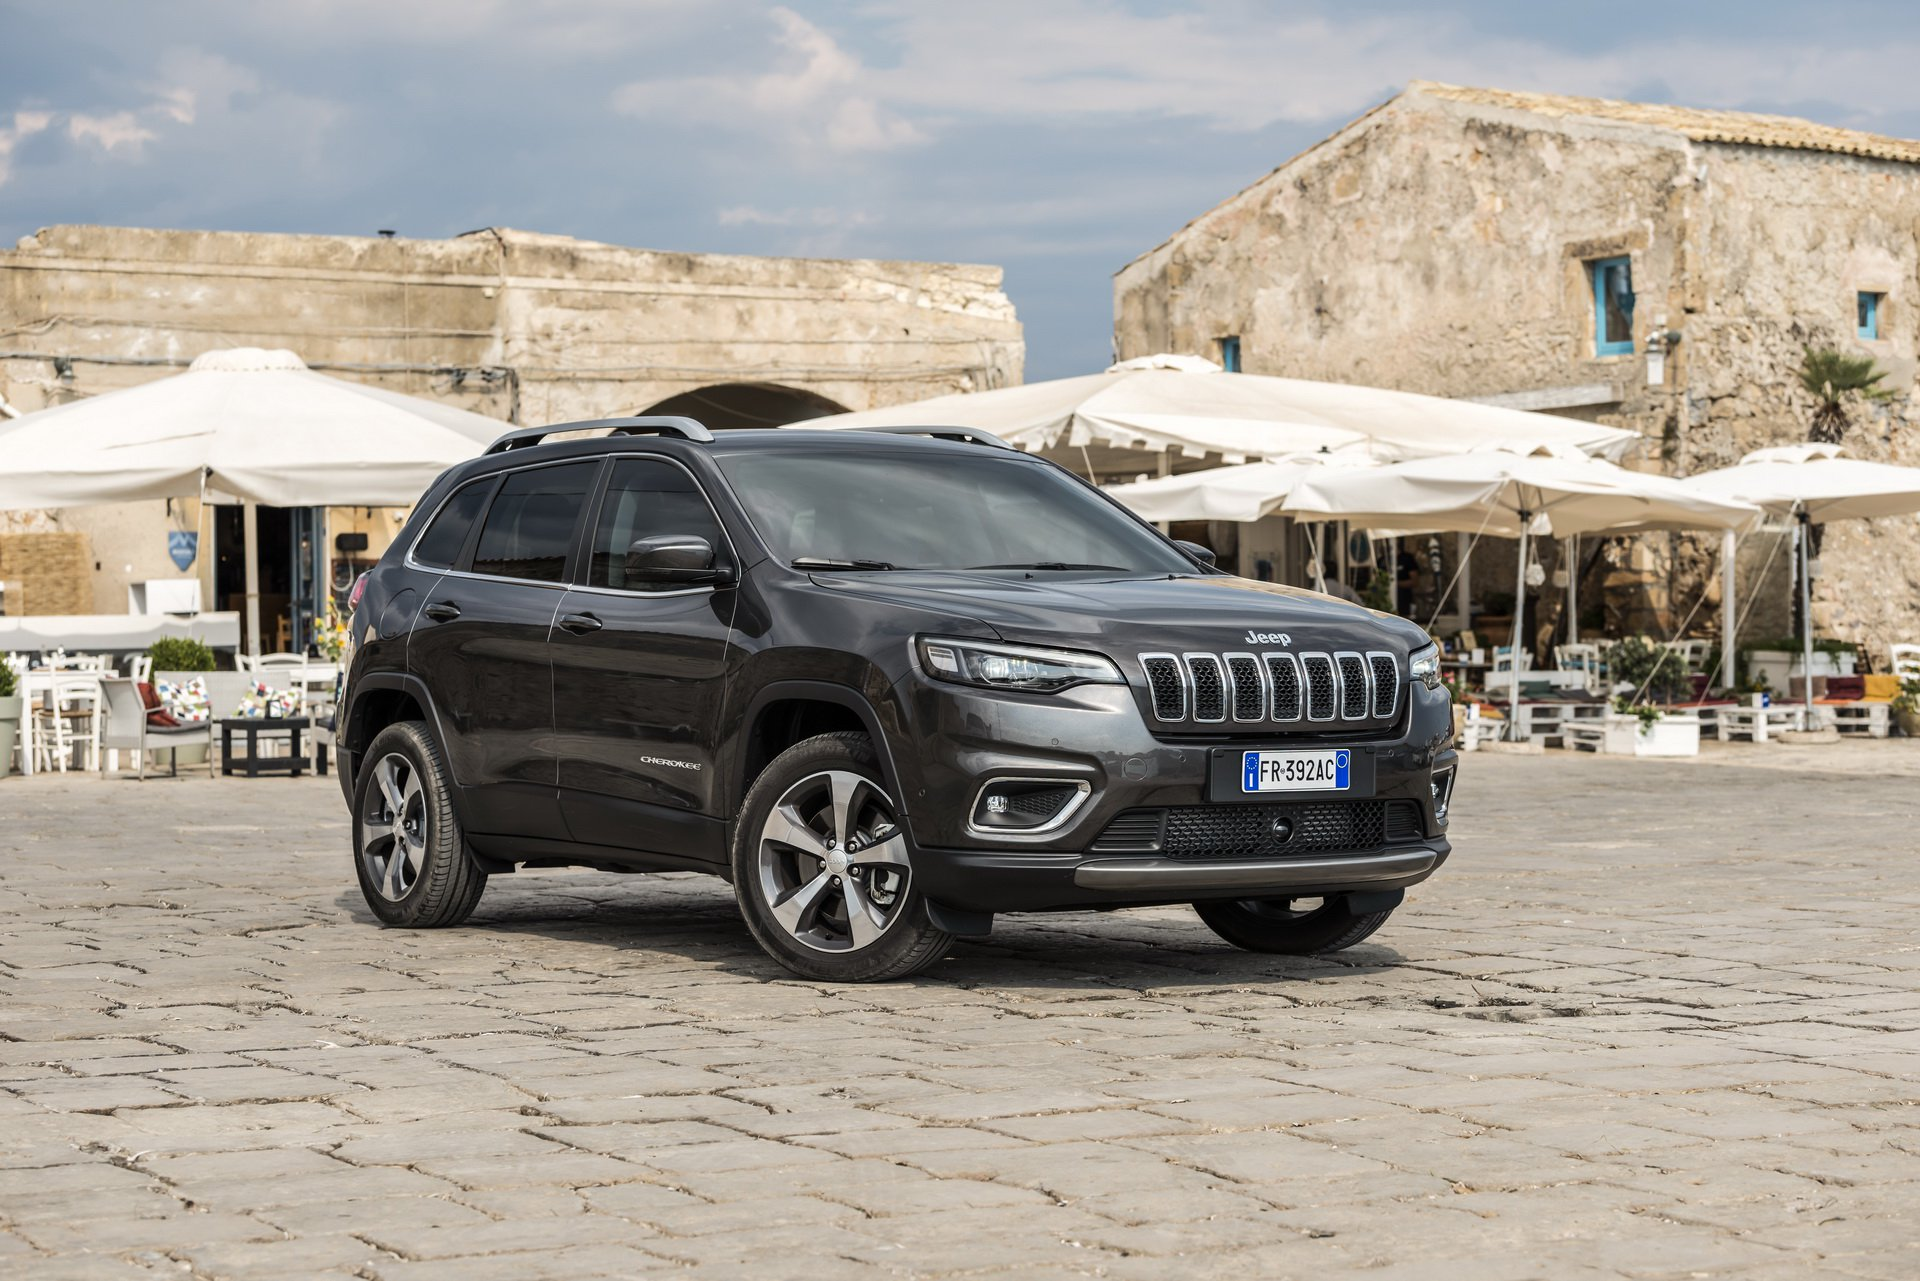 2019 jeep cherokee gains new turbo diesel engine in europe for Jeep with diesel motor